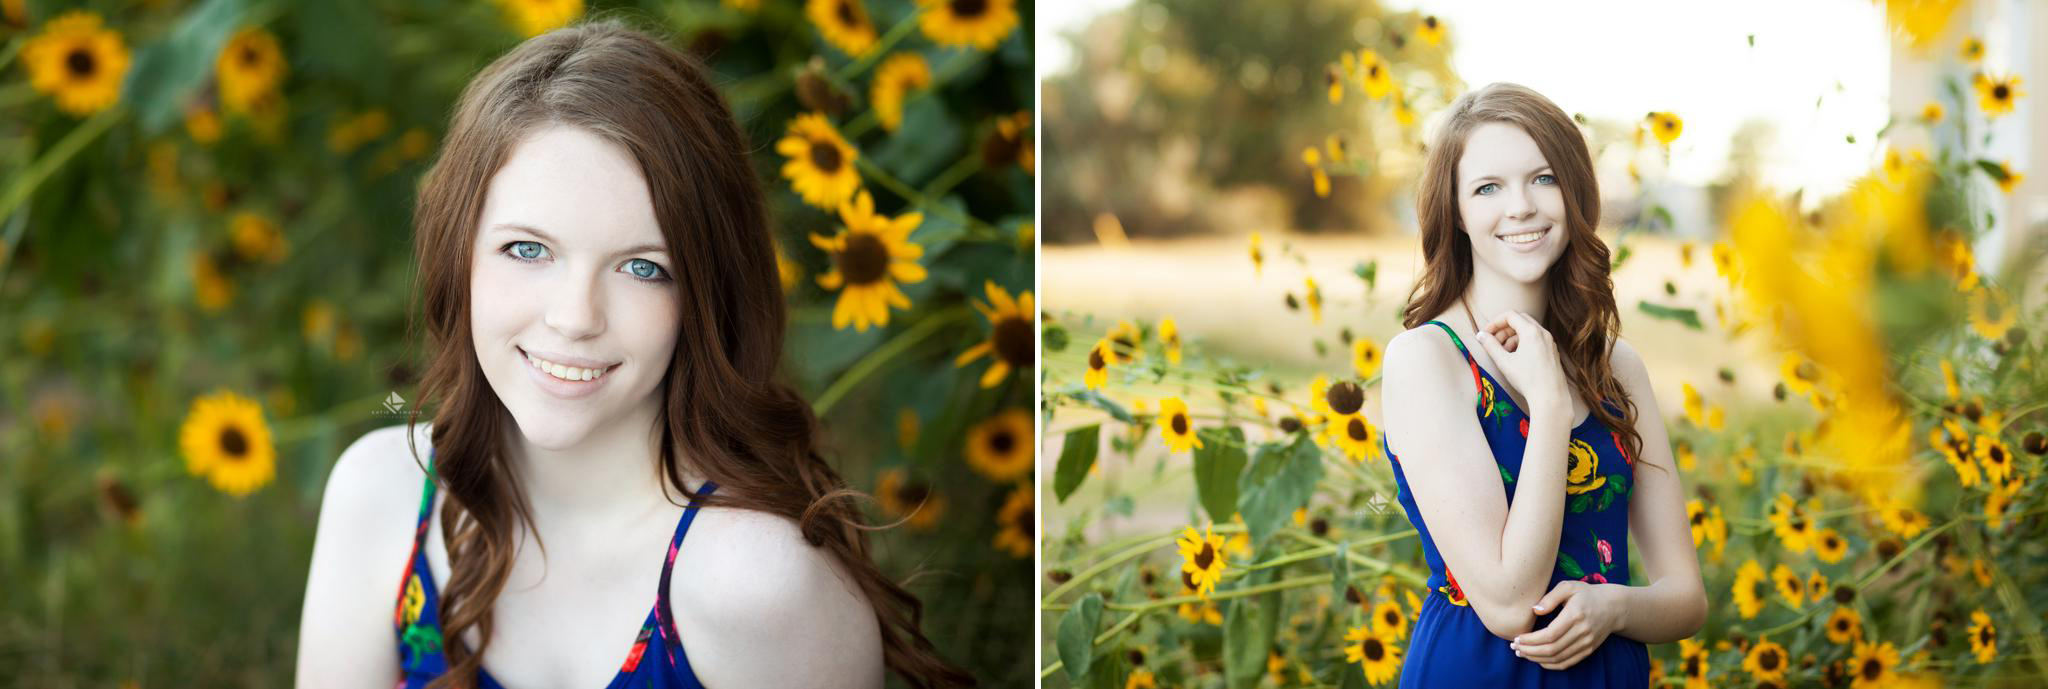 red headed senior girl in a blue printed maxi dress standing next to sunflowers